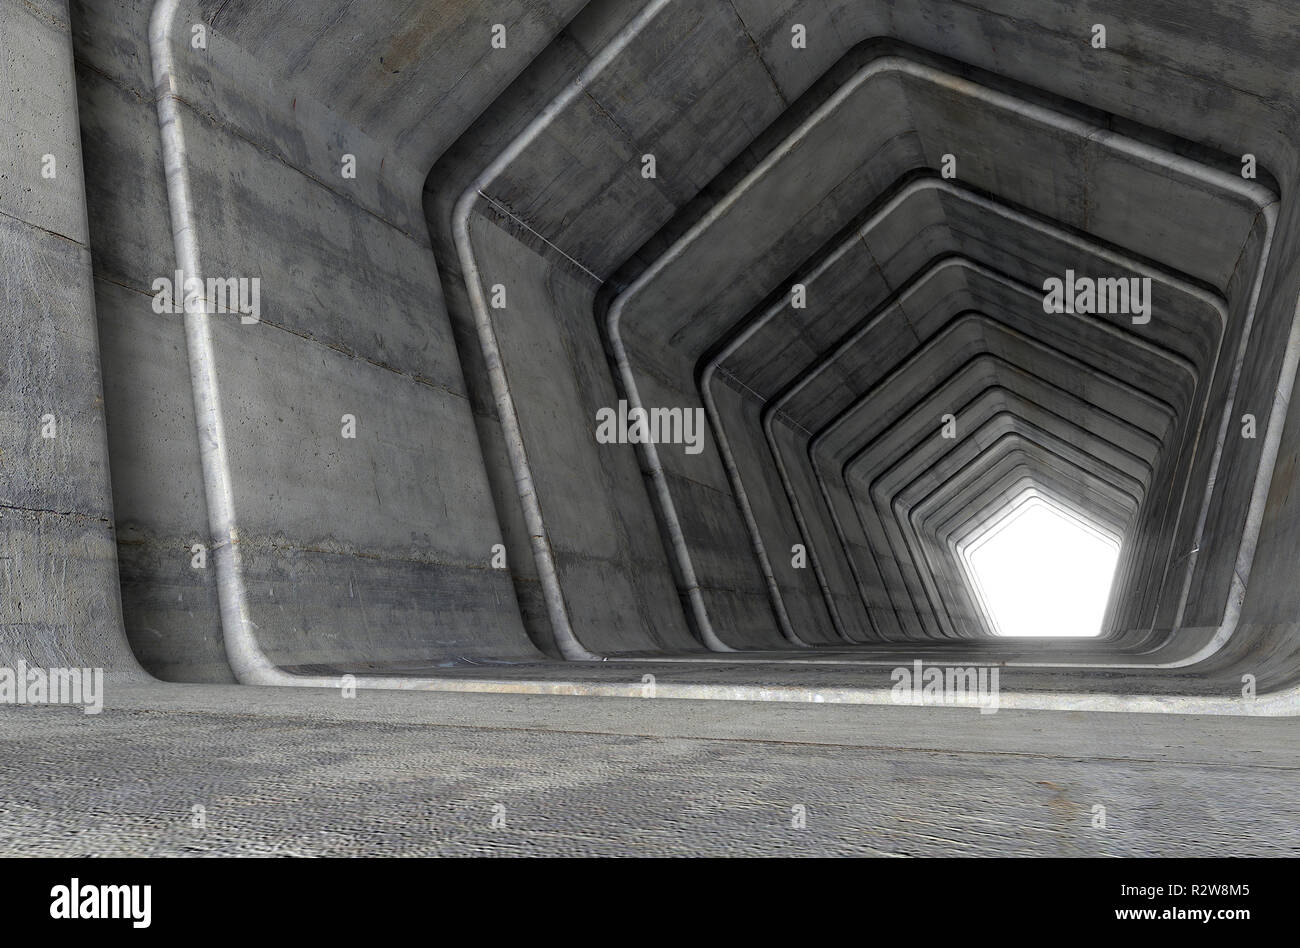 A look down a concrete tunnel made out of pentagonal geometric shapes with a light in the distance at the far end - 3D render Stock Photo